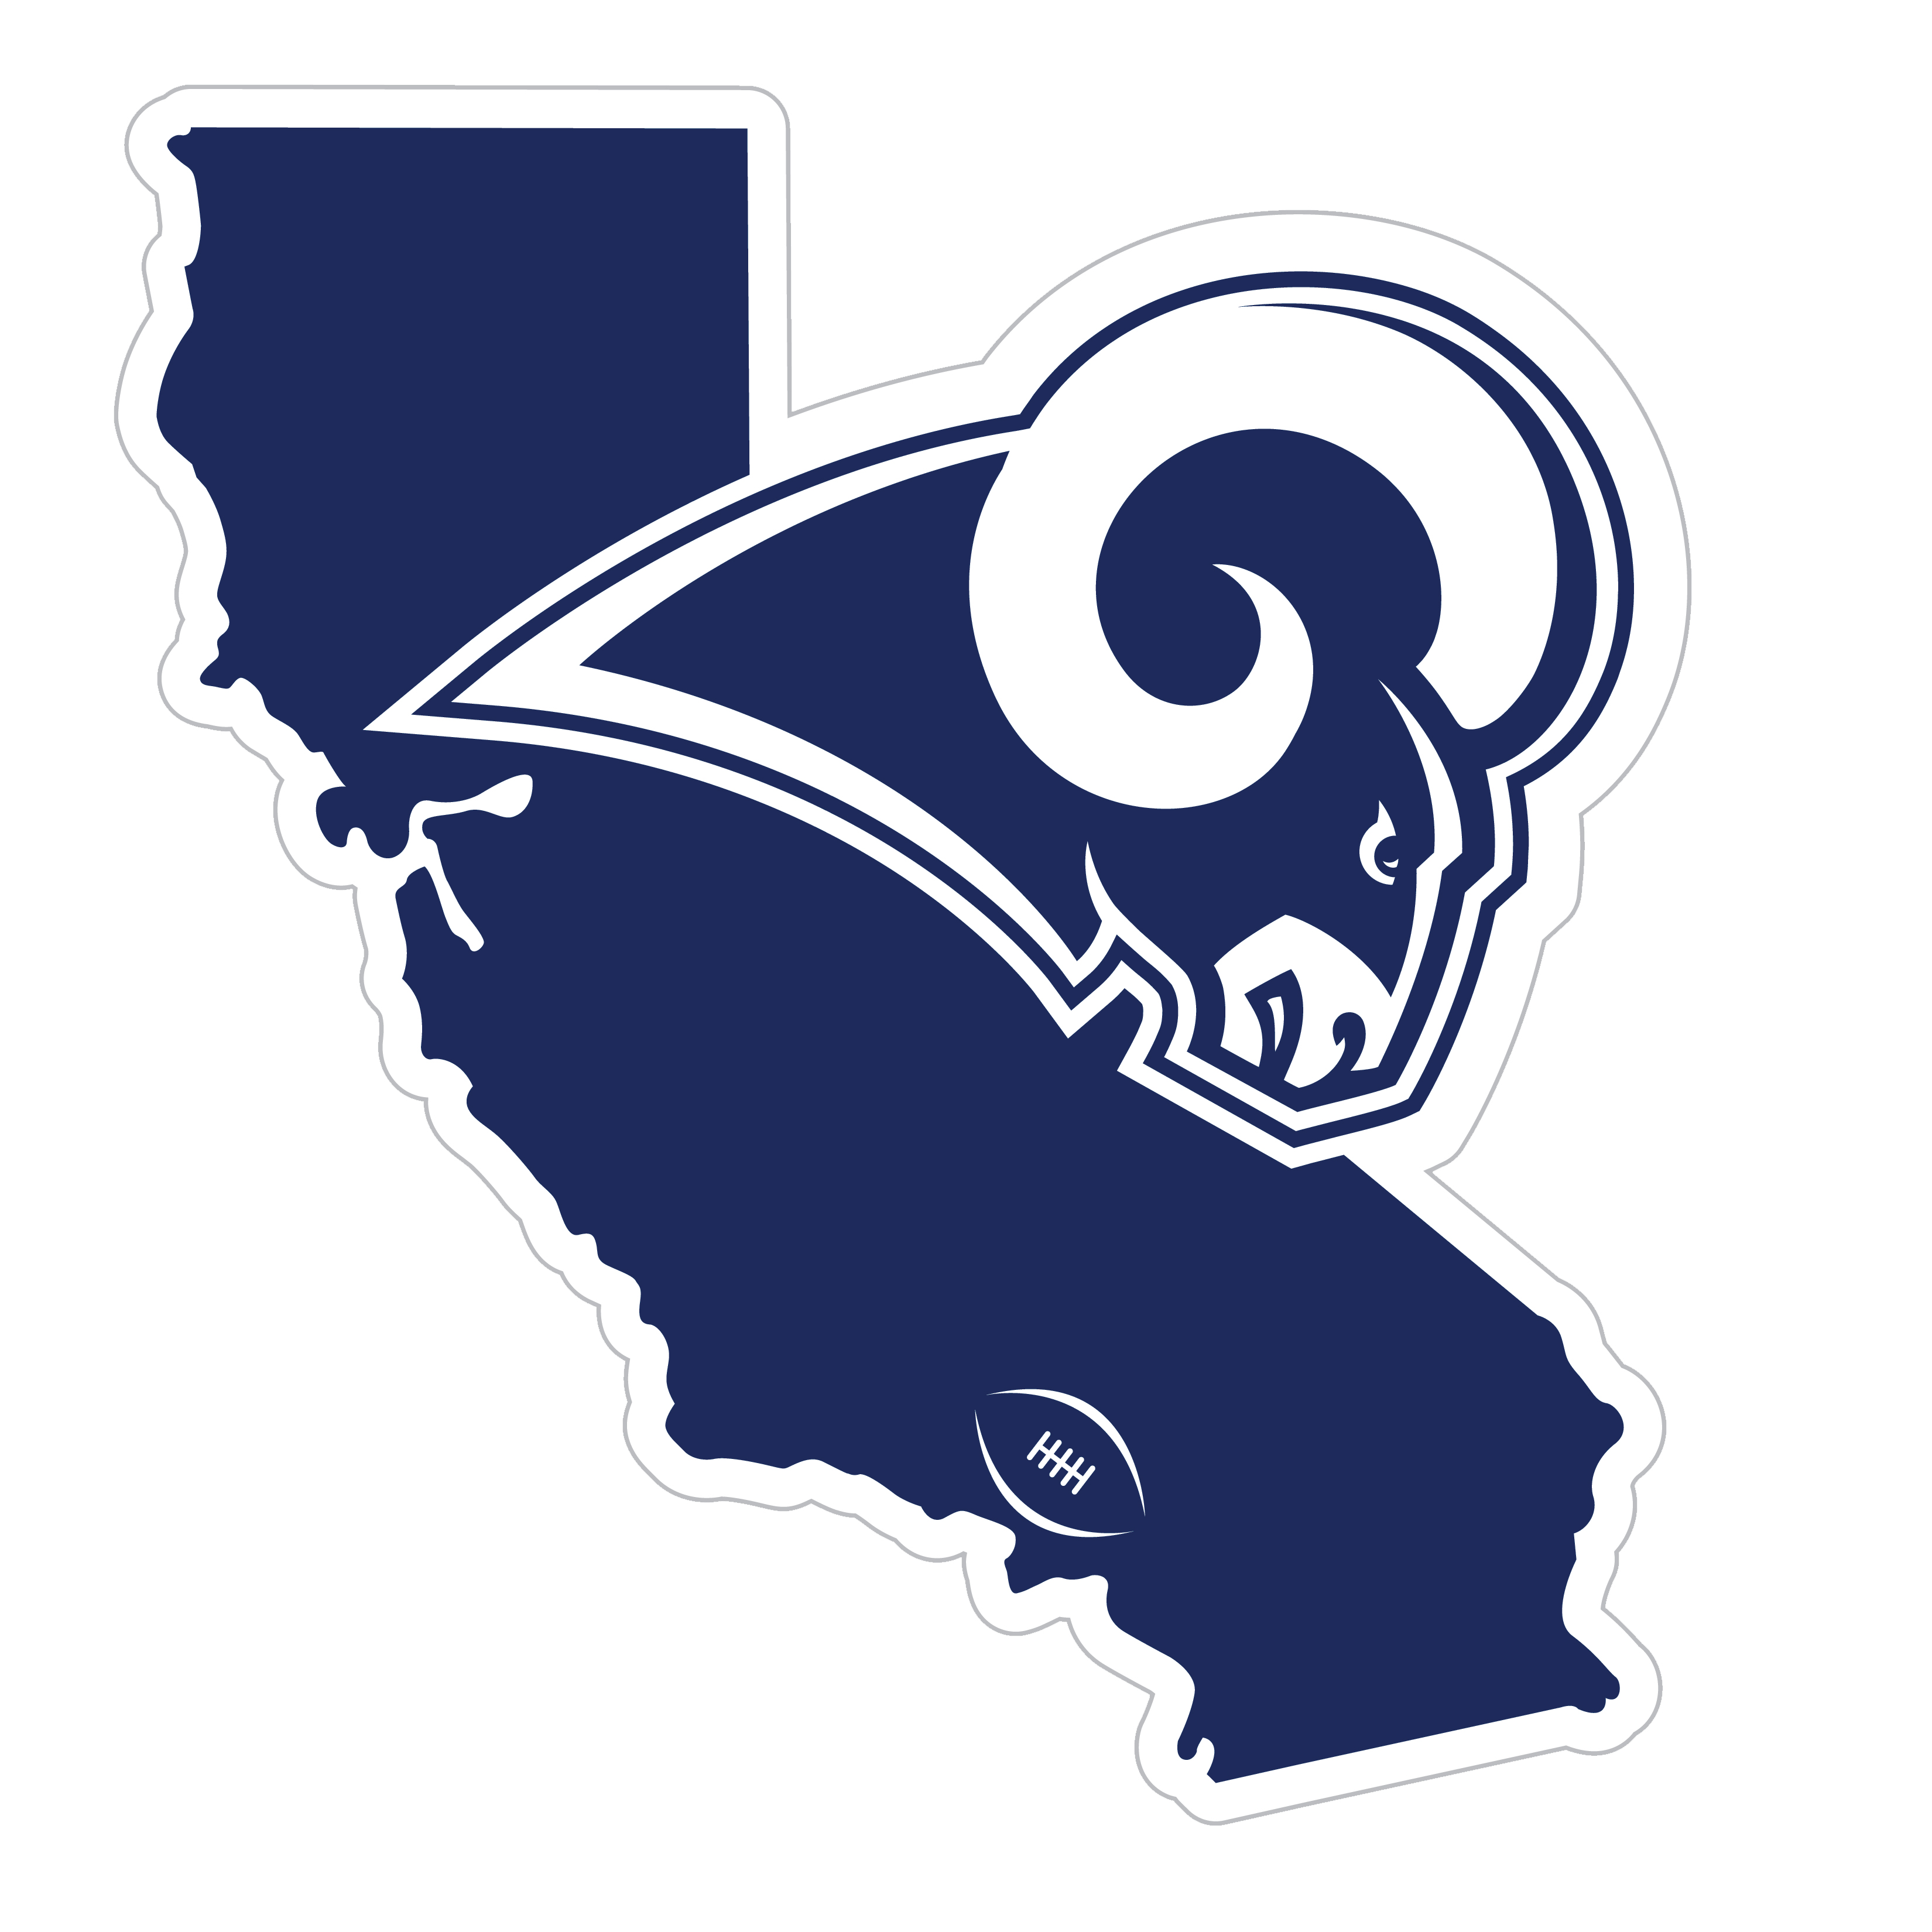 Los Angeles Rams Home State 11 Inch Magnet - Whether you are caravaning to the game or having a tailgate party make sure you car is wearing its fan gear with our extra large, 11 inch Los Angeles Rams home state magnets. These striking magnets can be easily placed on for game day and removed without he residue left by decals. The design features a bright state outline with the location of the team highlighted with a football and a large team logo.